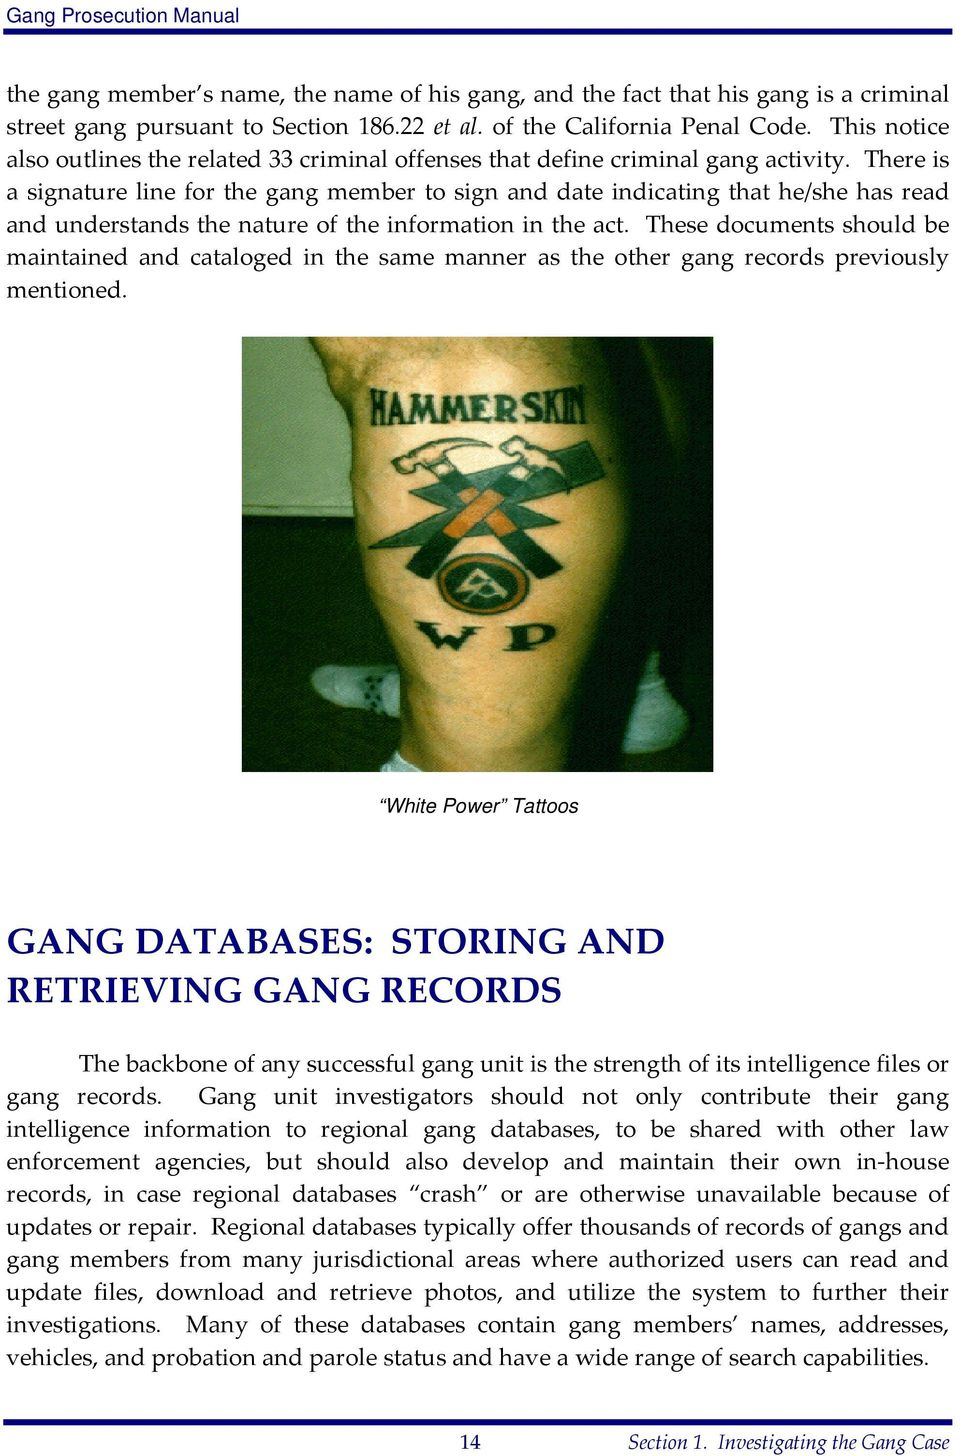 There is a signature line for the gang member to sign and date indicating that he/she has read and understands the nature of the information in the act.